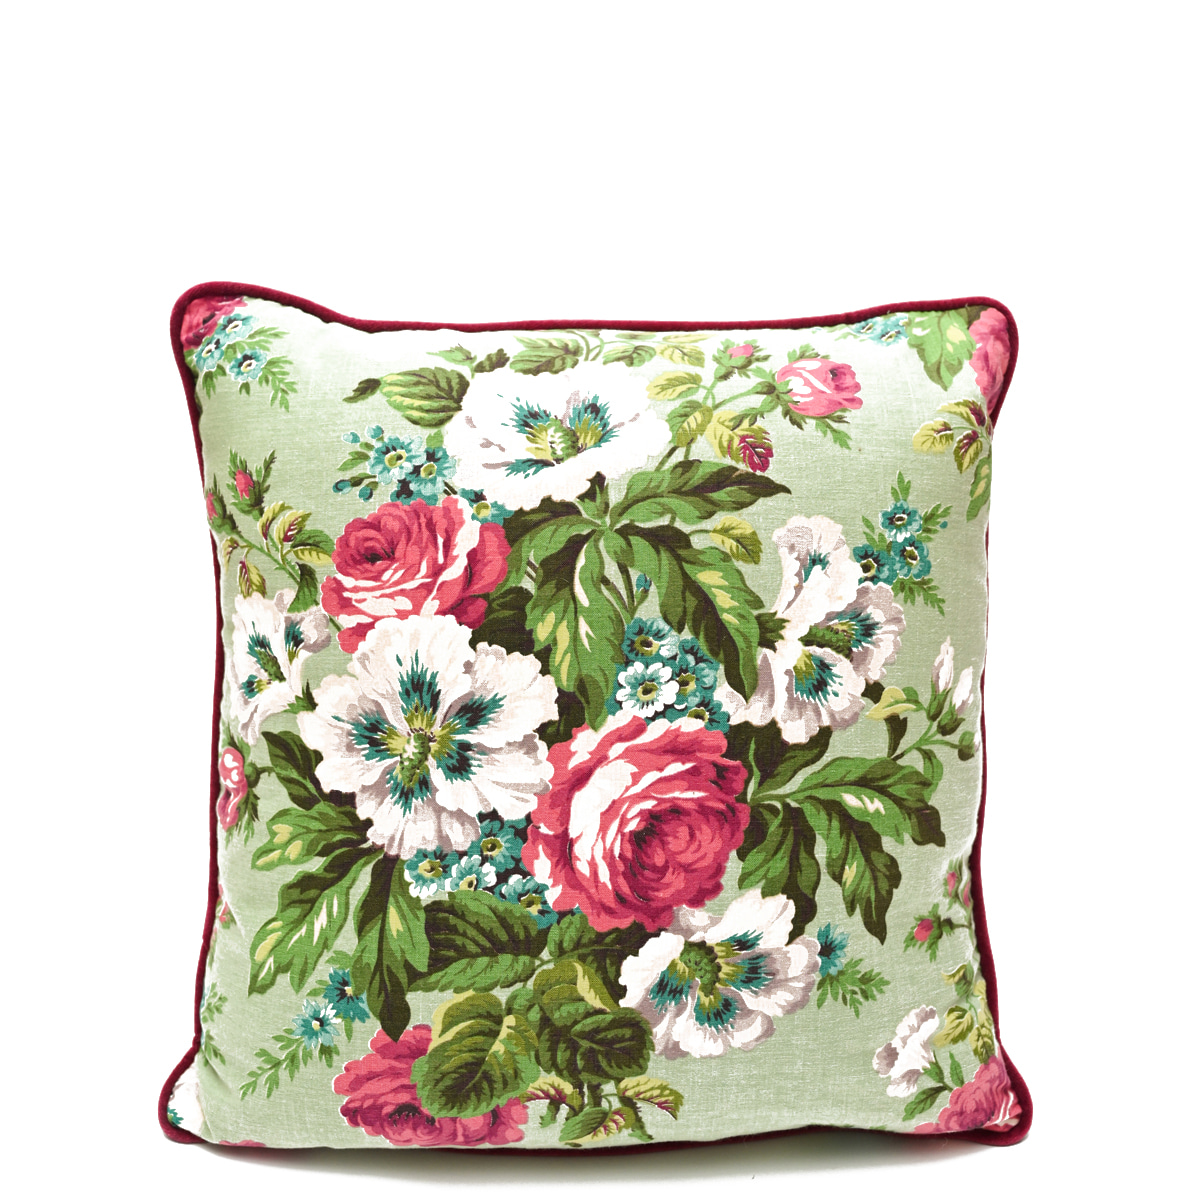 Barkcloth Pillow Pair – Floral Motif on Mint Green